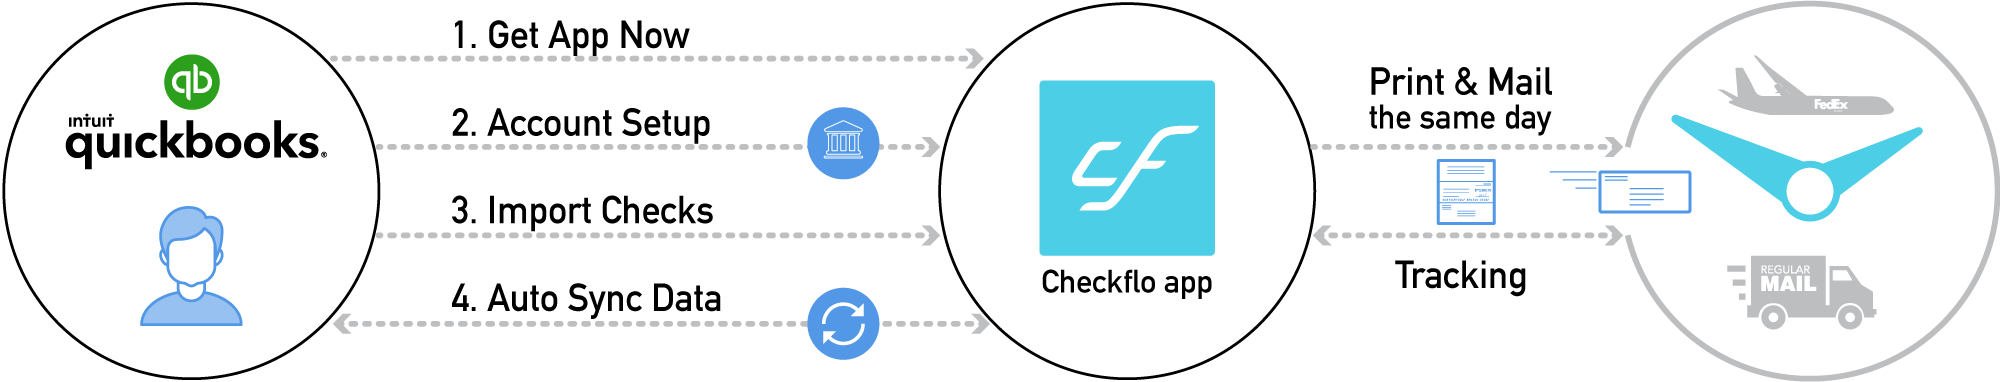 Checkflo App integration with QuickBooks